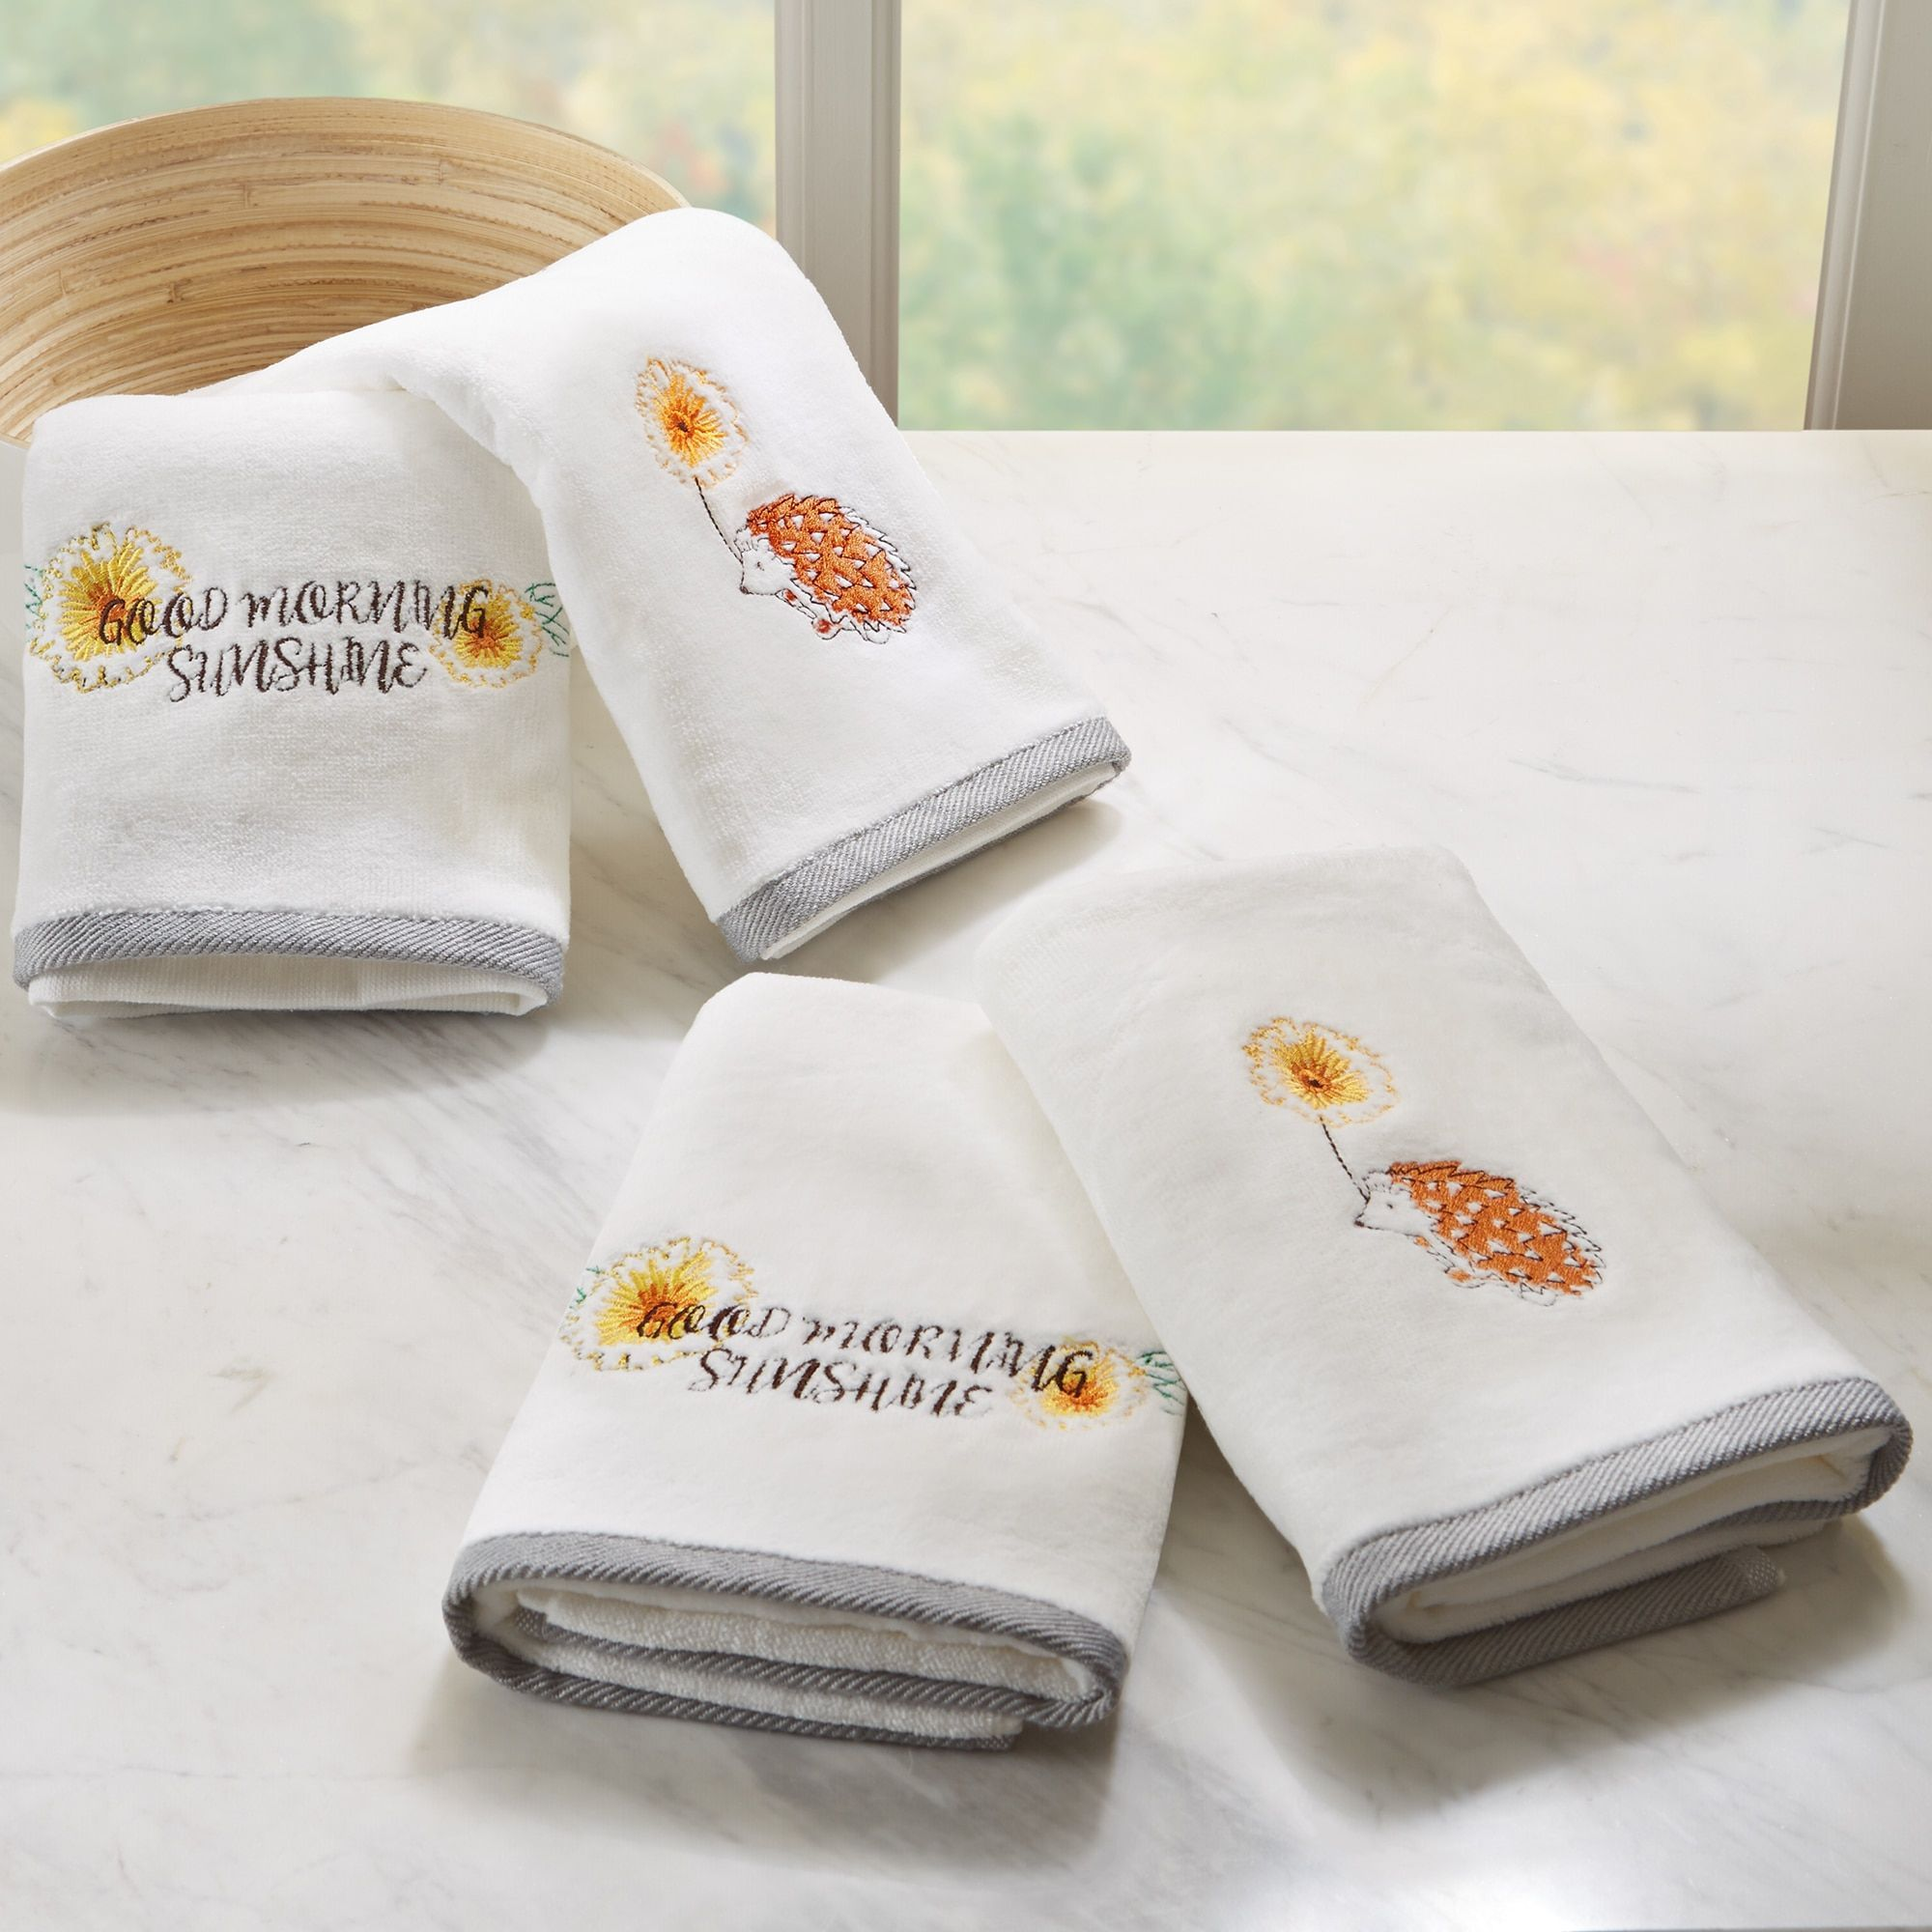 HipStyle Happy Hedgehog Embroidered Hand Towel